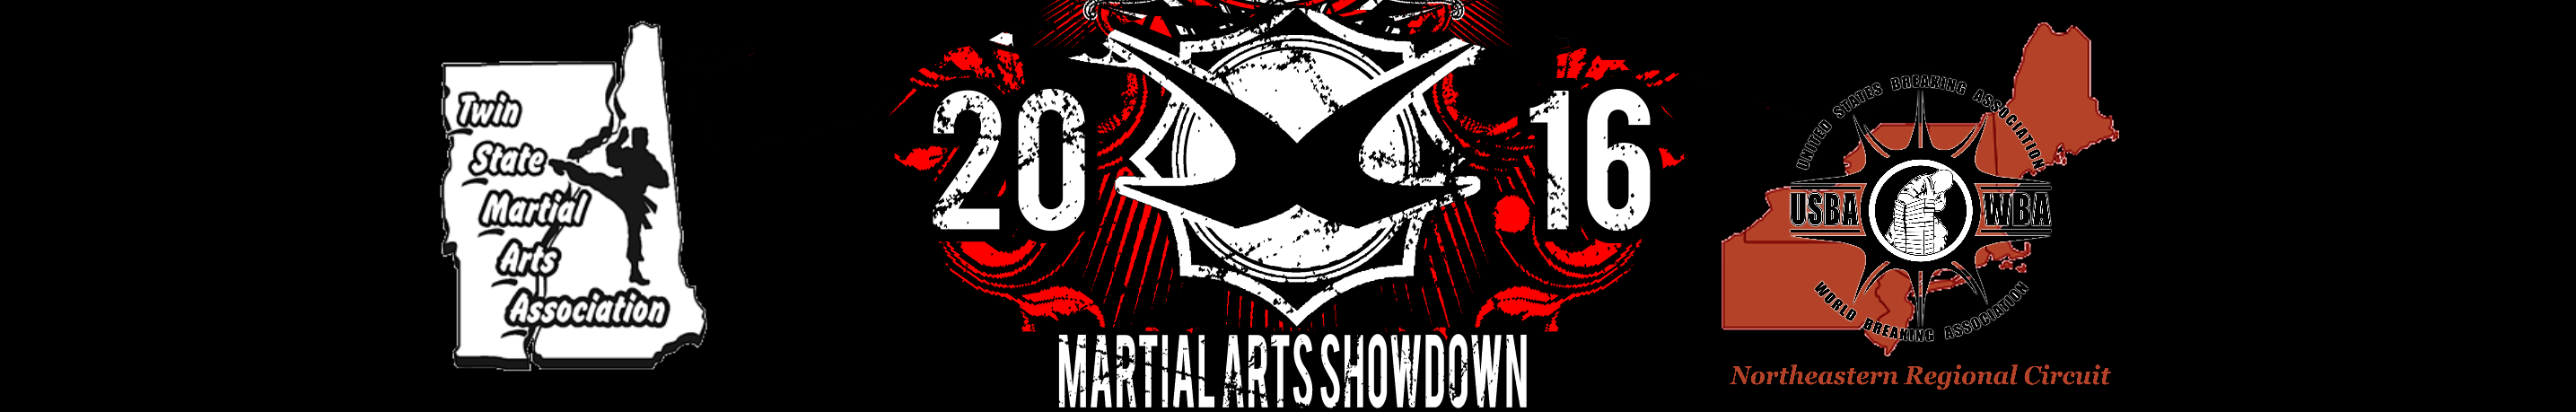 whistlekick Martial Arts Showdown